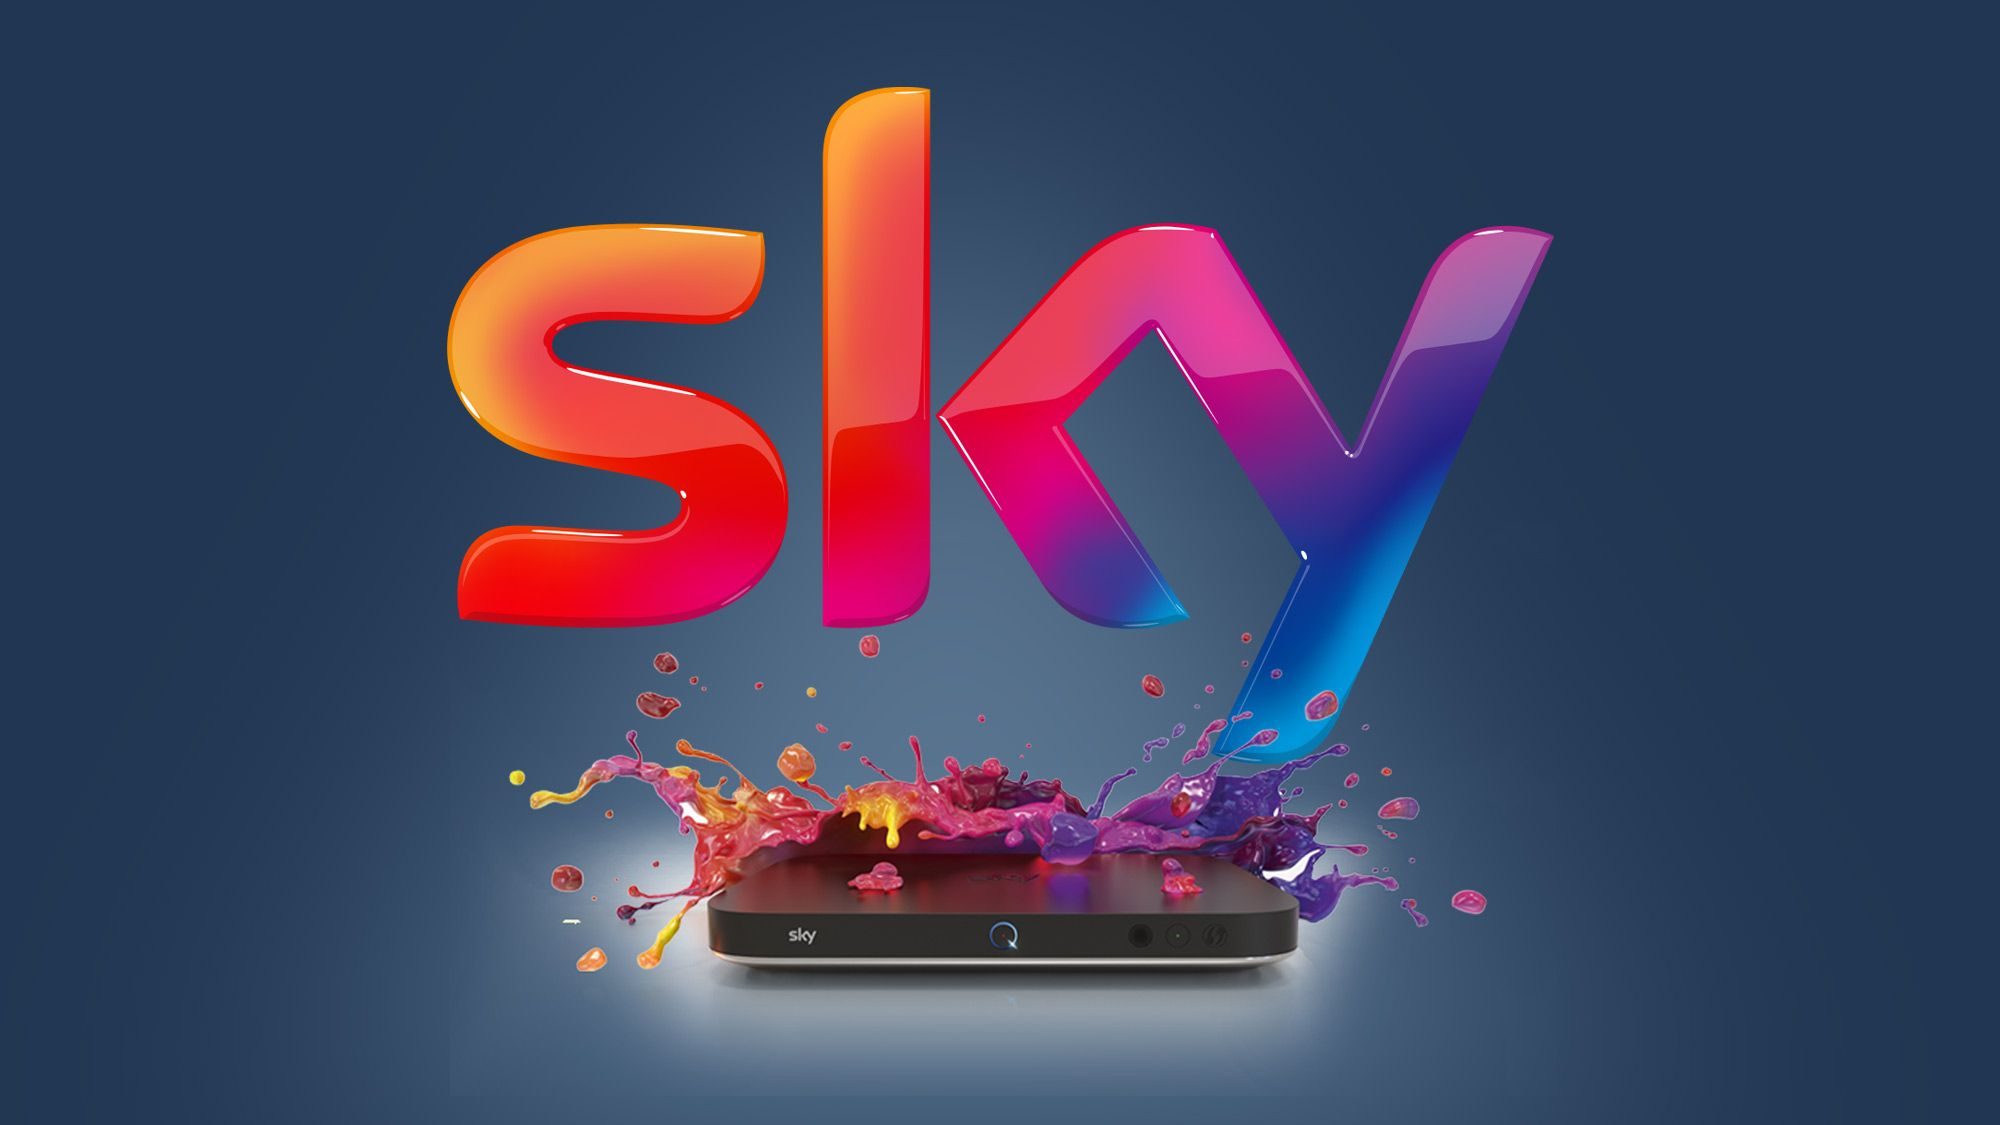 Don T Miss Out On The Chance To Save Up To 324 With These Sky Tv And Broadband Deals In 2020 Sky Tv Tv Deals Sky Cinema